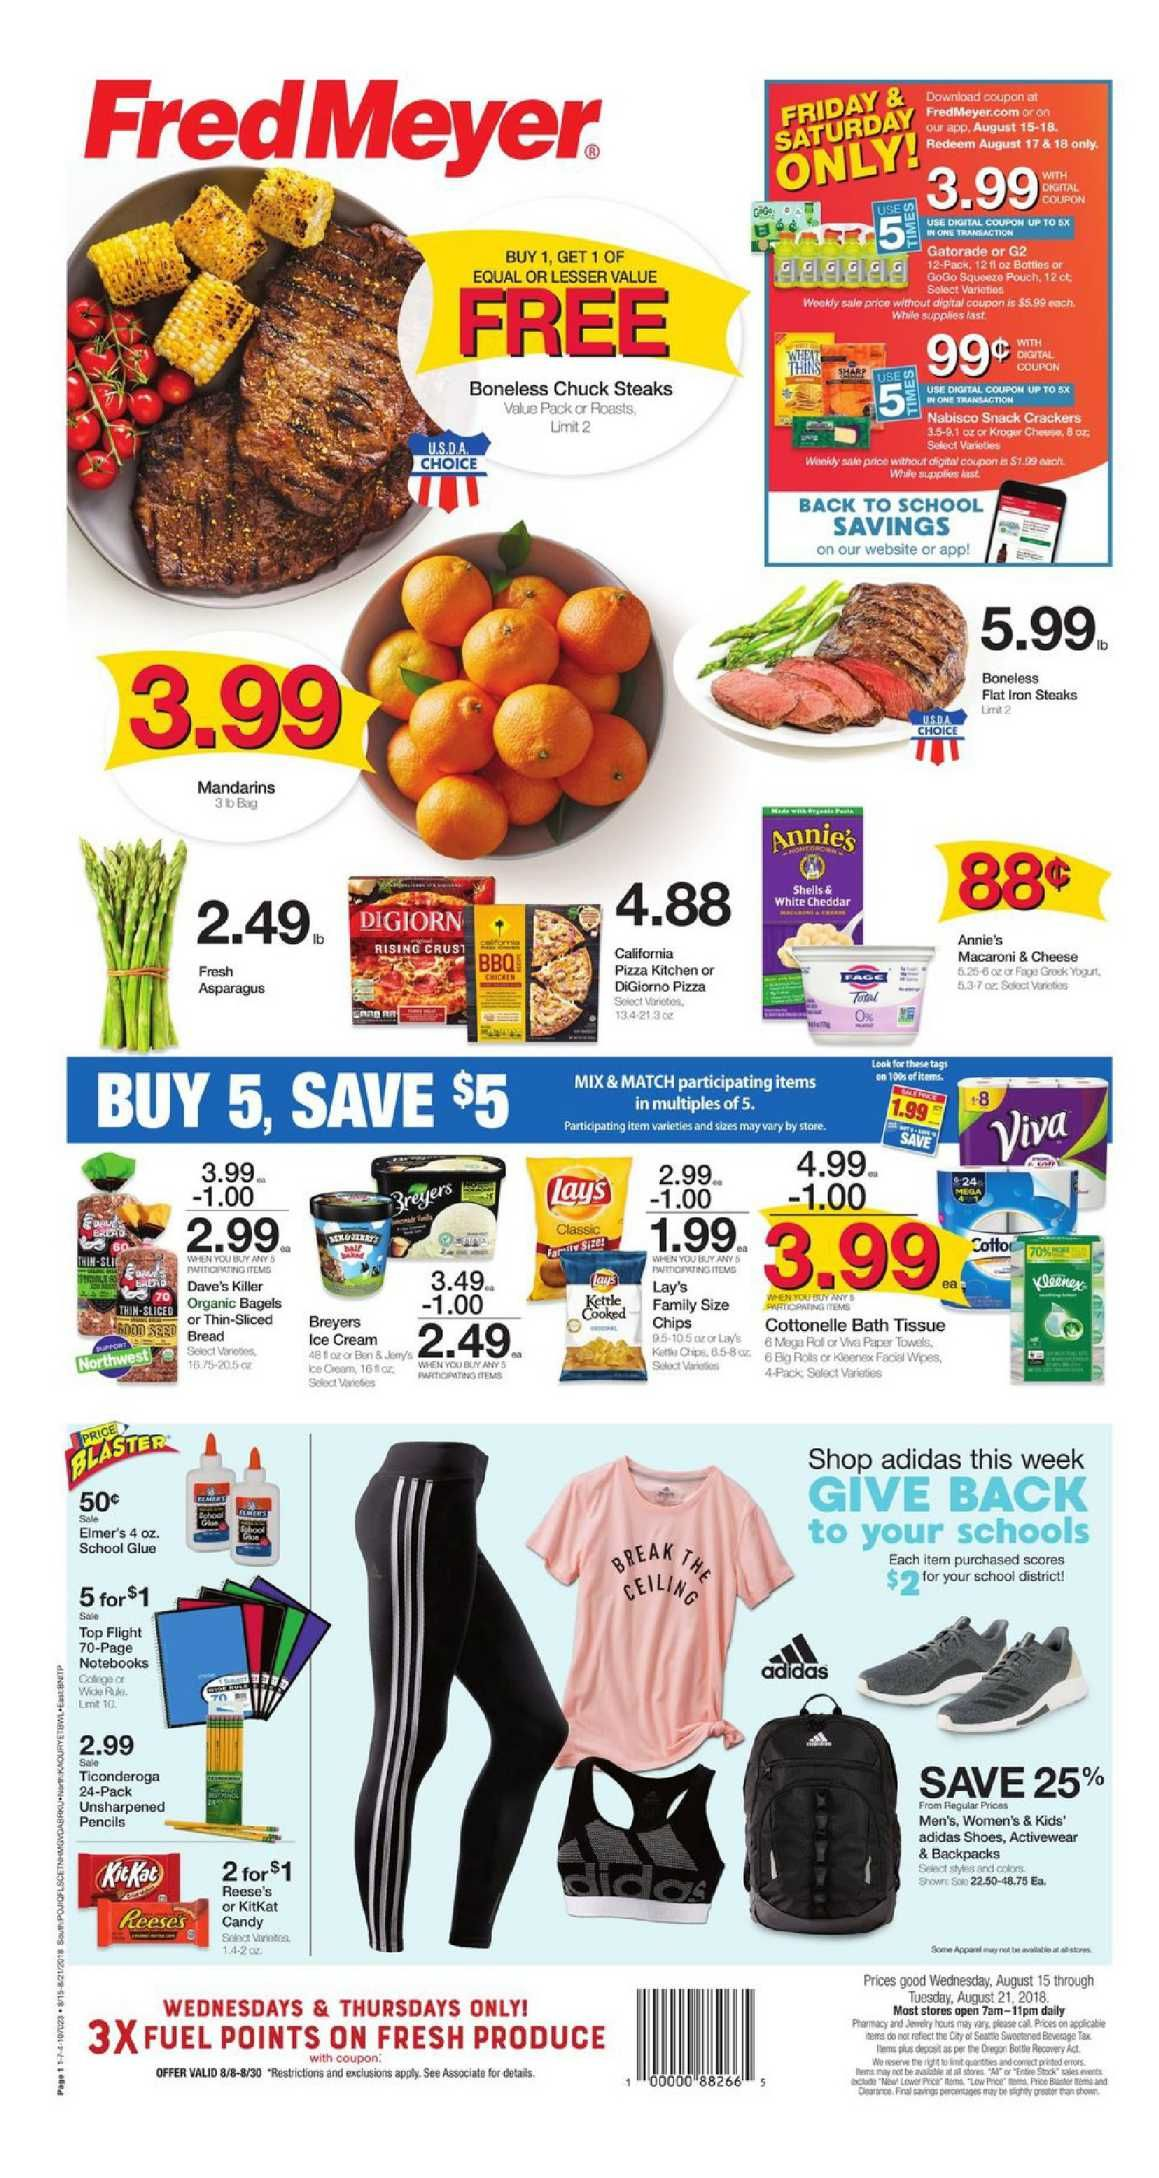 d788ace047c9 Check Latest Fred Meyer Weekly ad flyer August 15 – 21